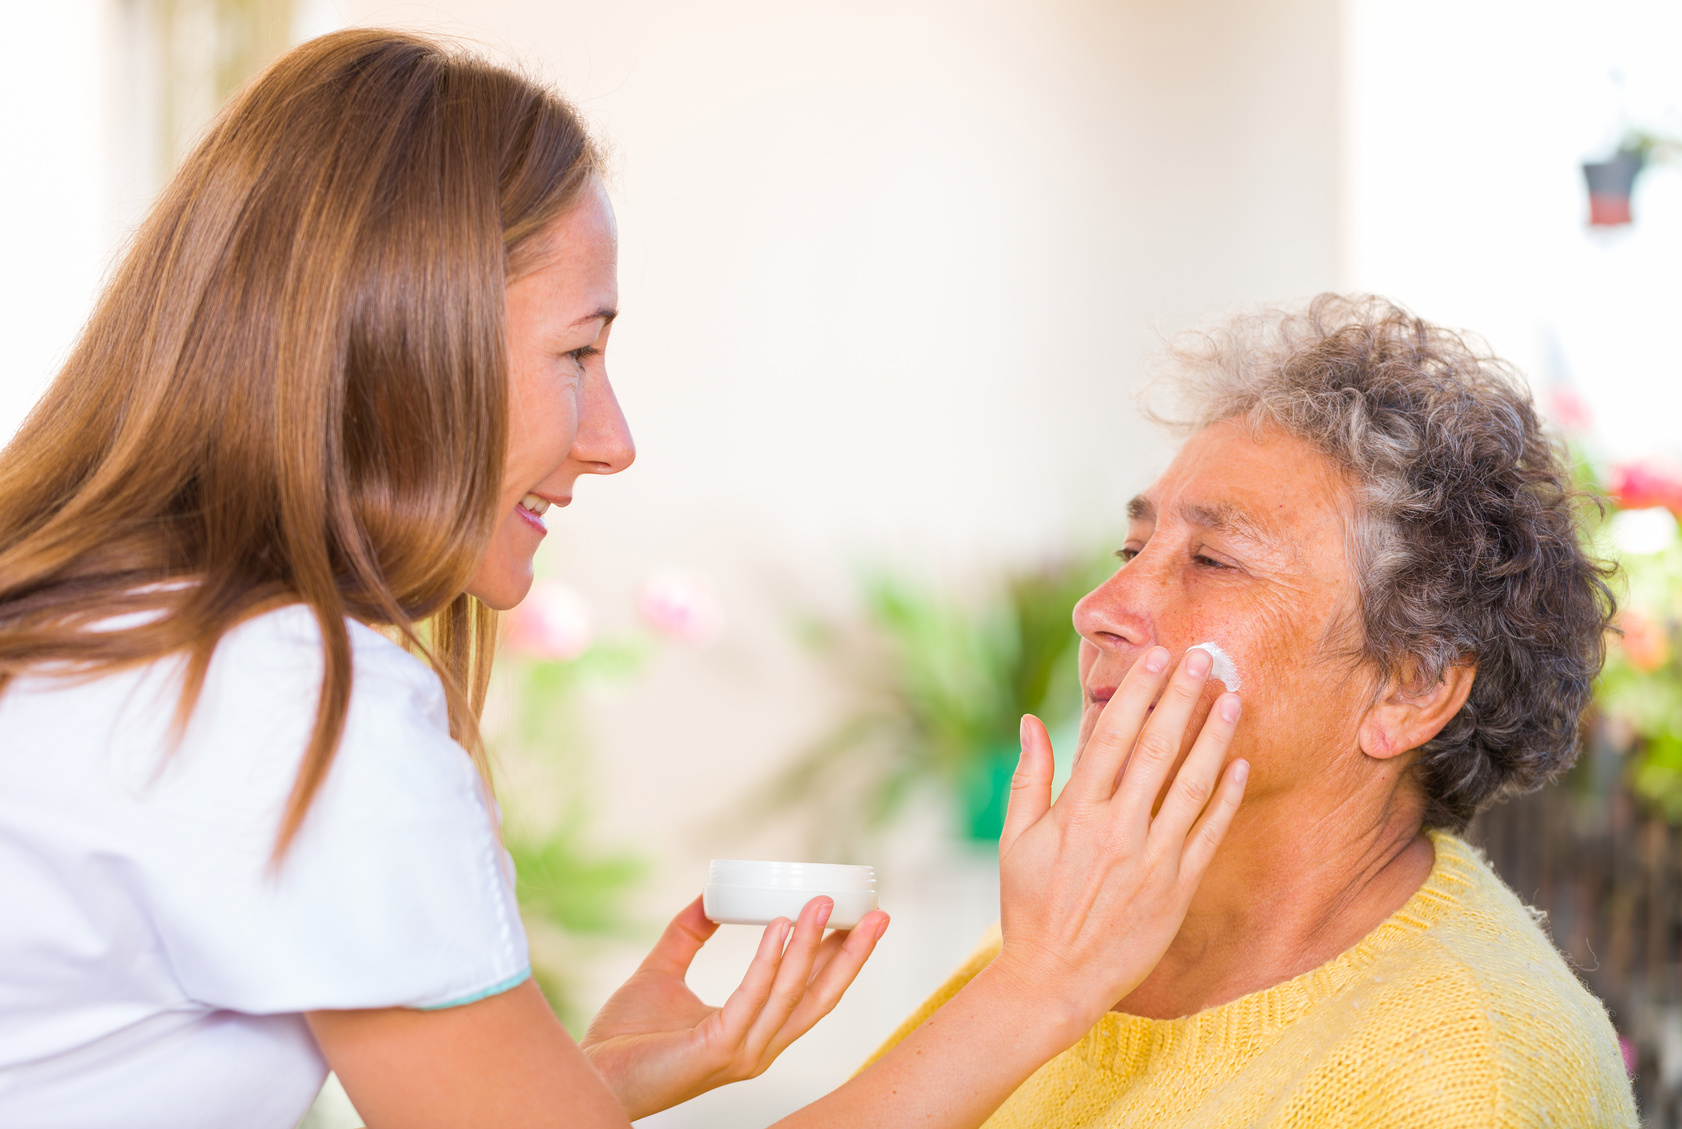 Caregiver rubs the face cream on the elderly womans face